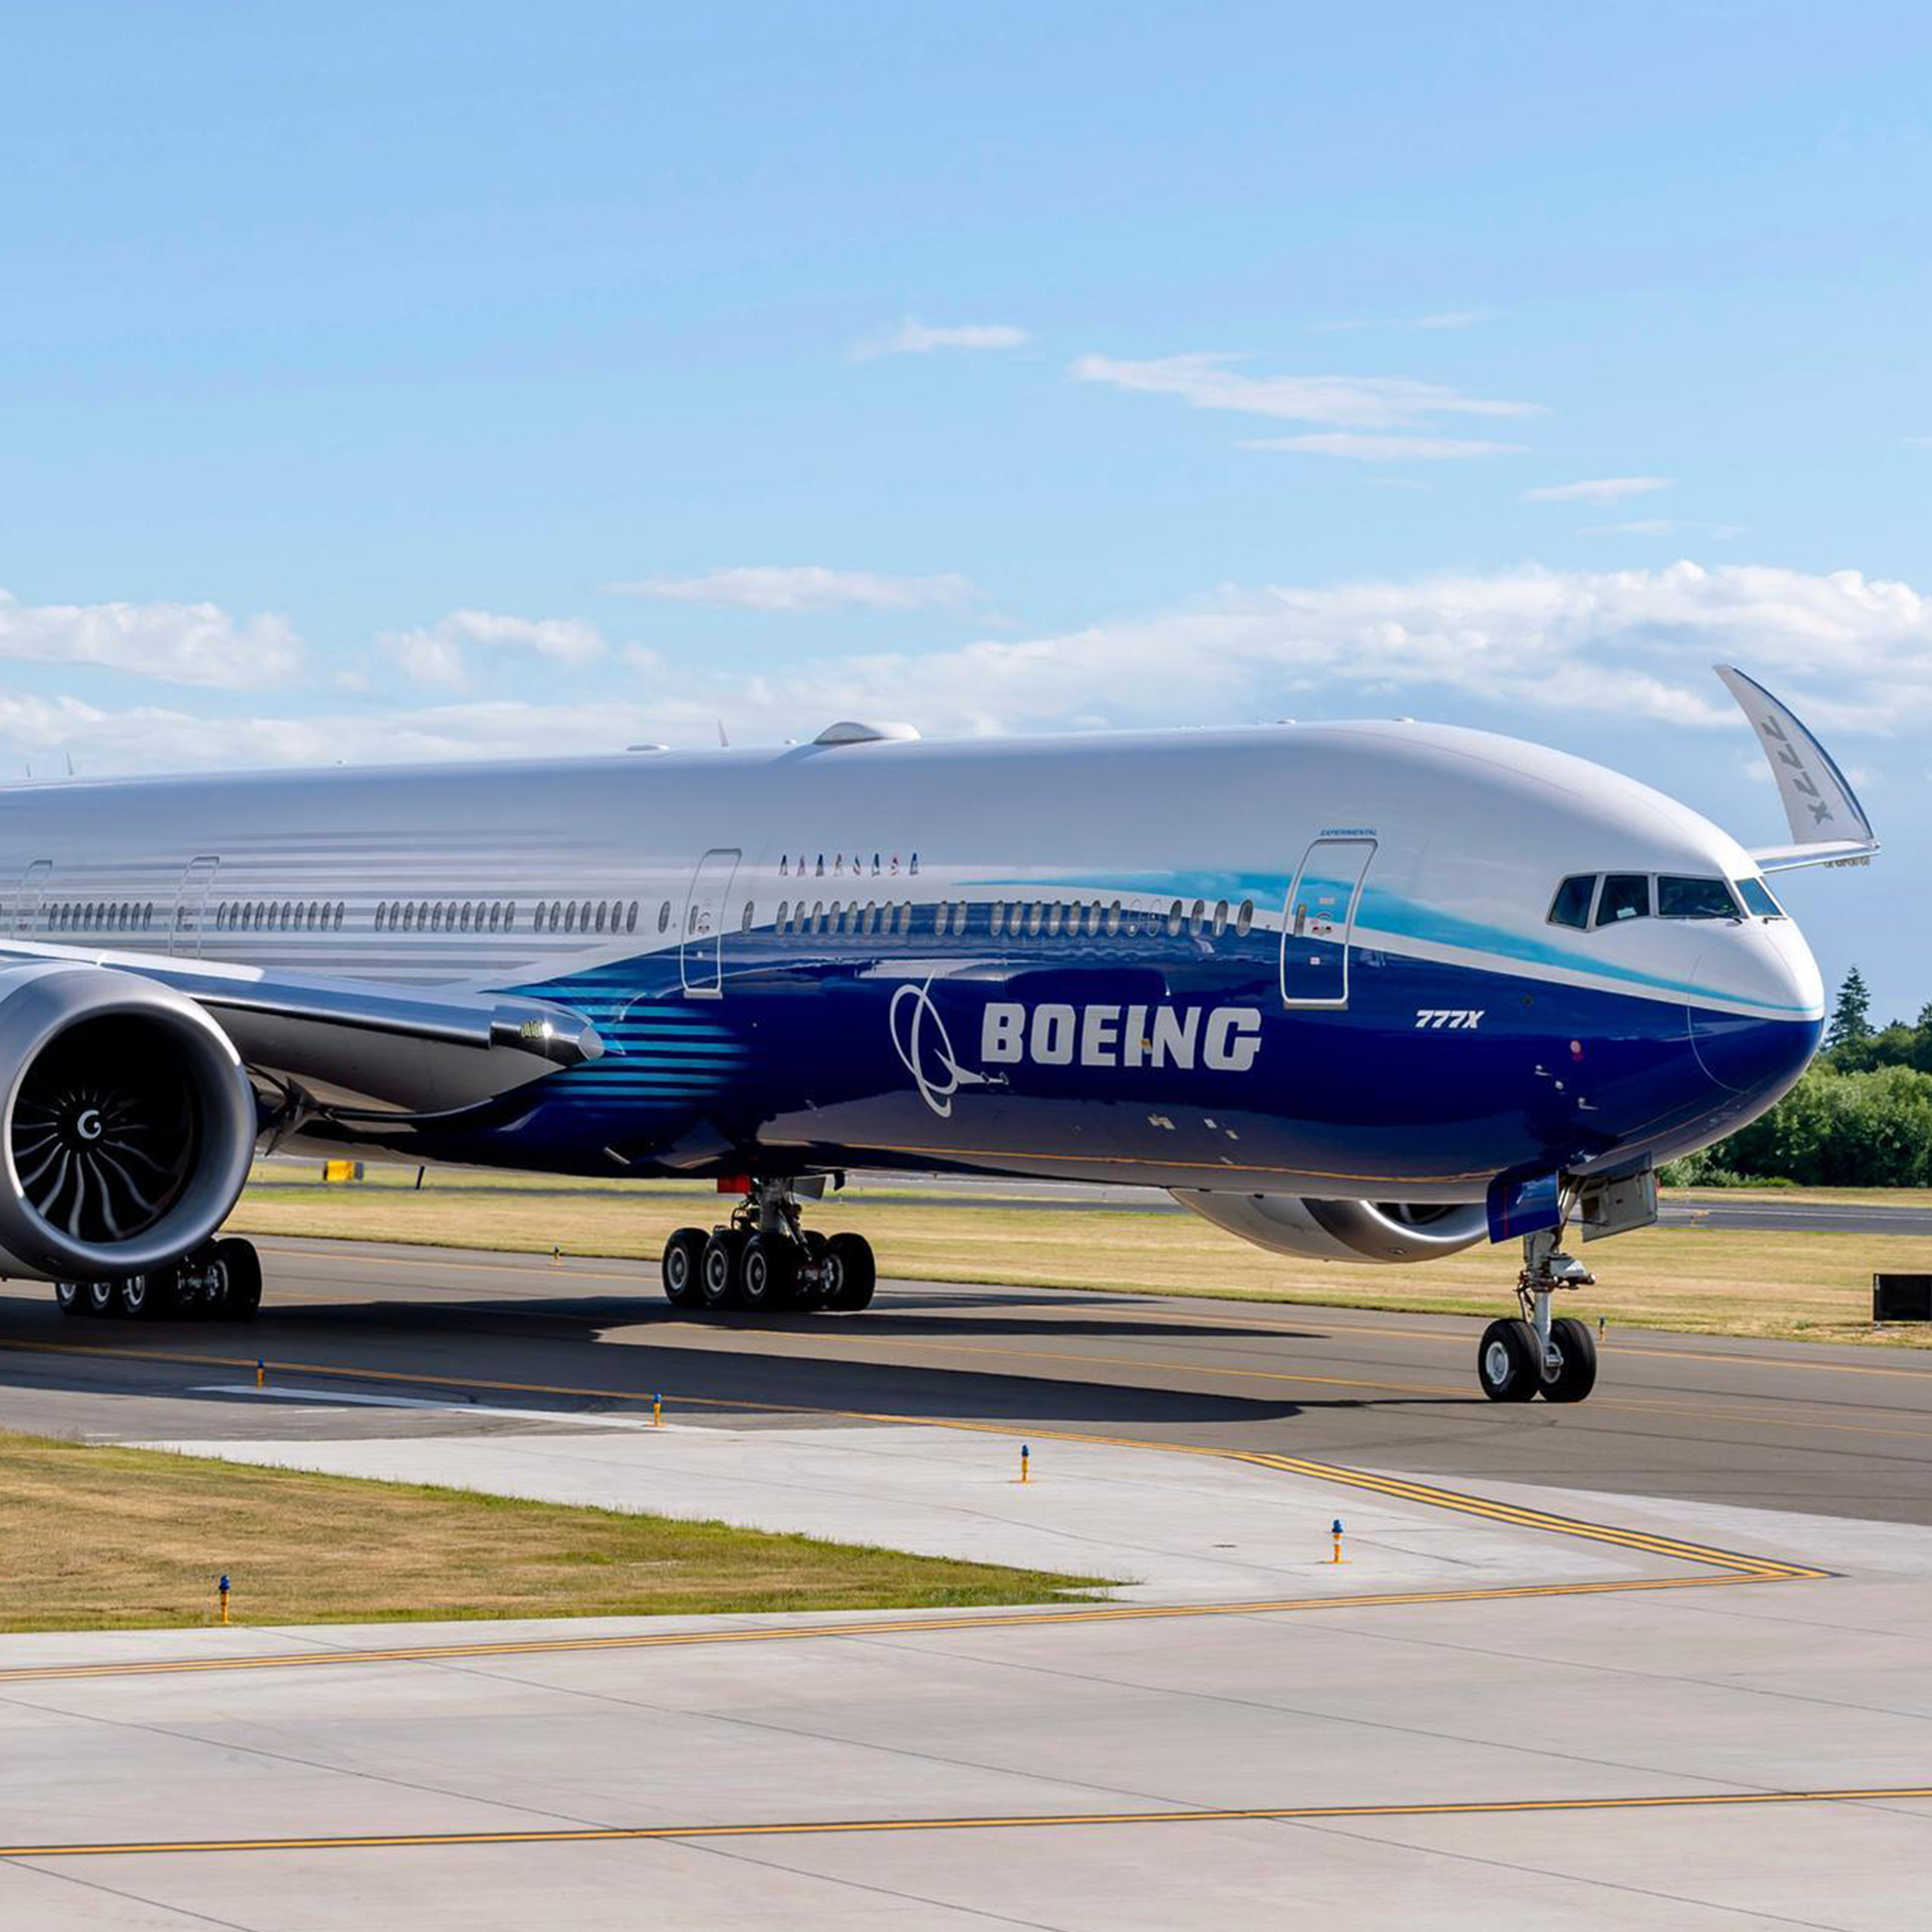 Hypermotion Dubai Industry News - All Boeing planes set to fly on 100% sustainable fuels by 2030